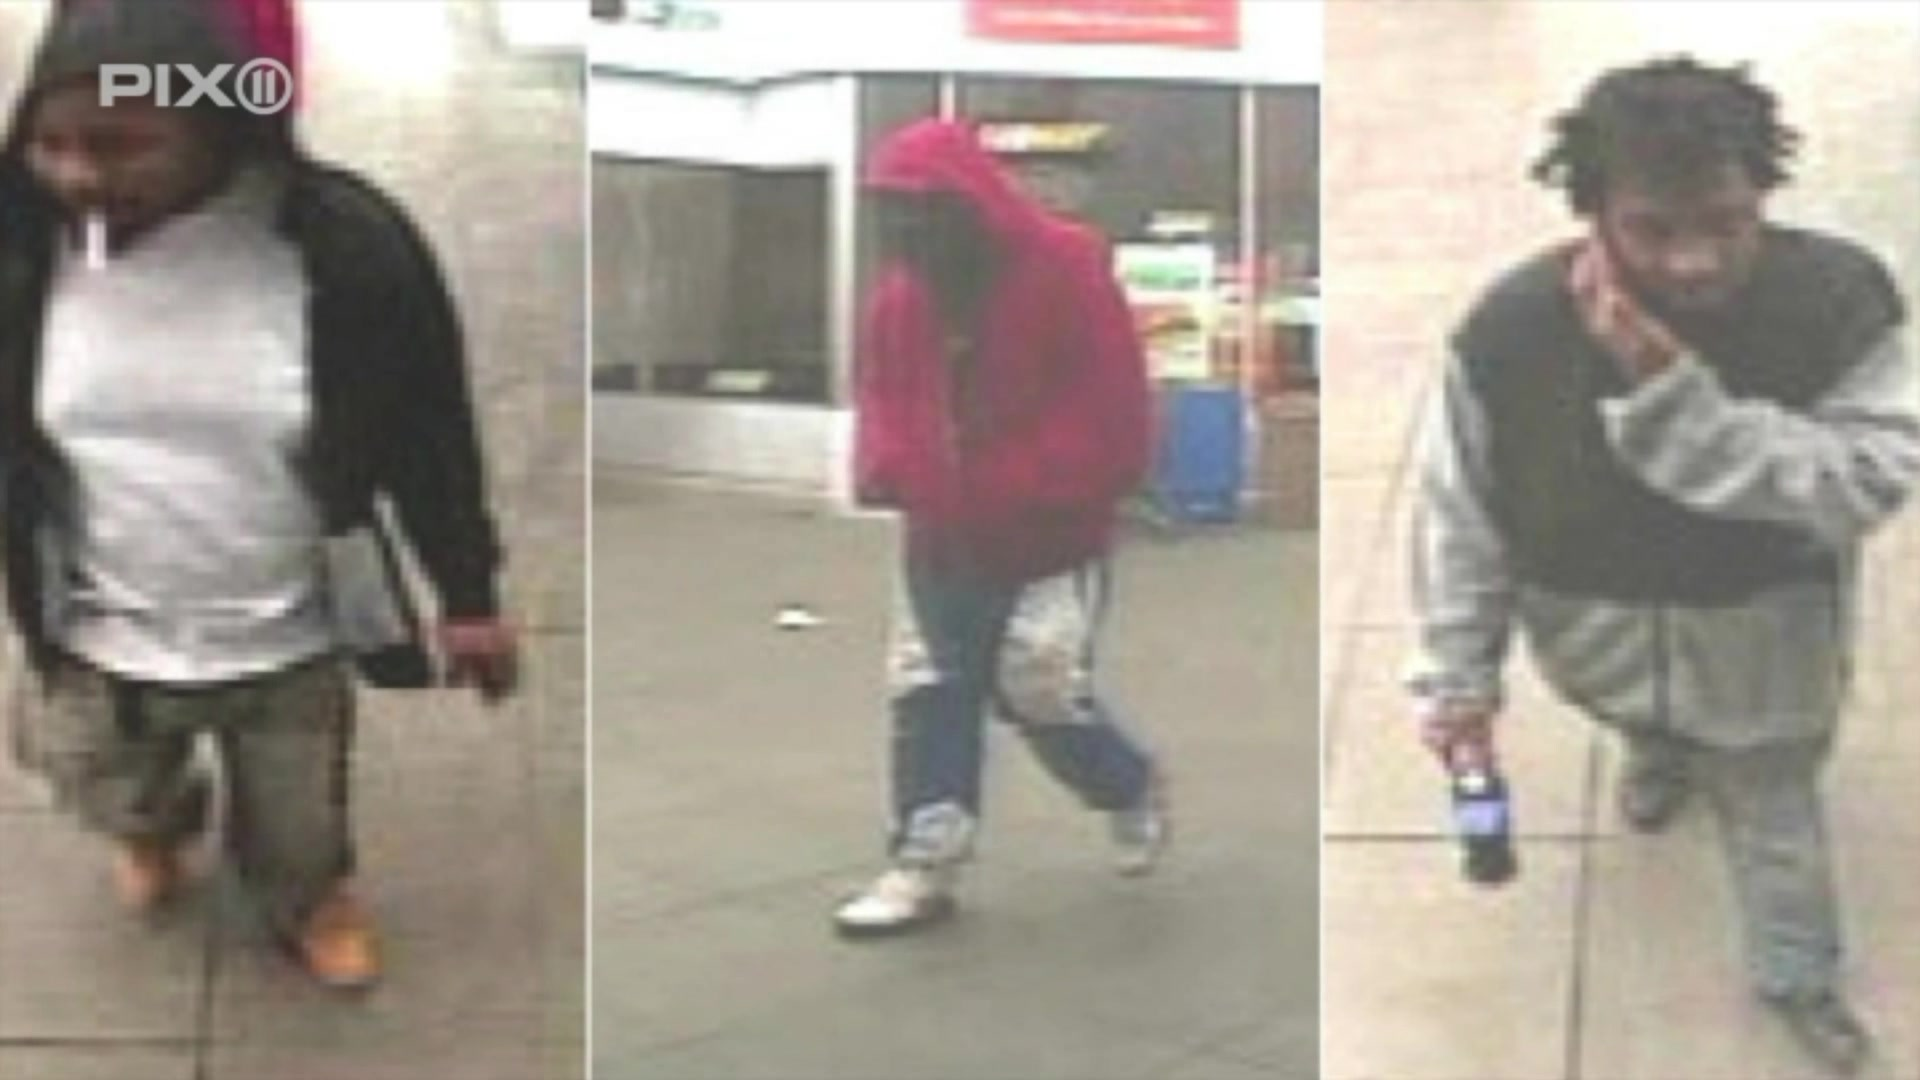 Suspects Go Unnoticed While Stealing 20 iPods from Virginia Walmart